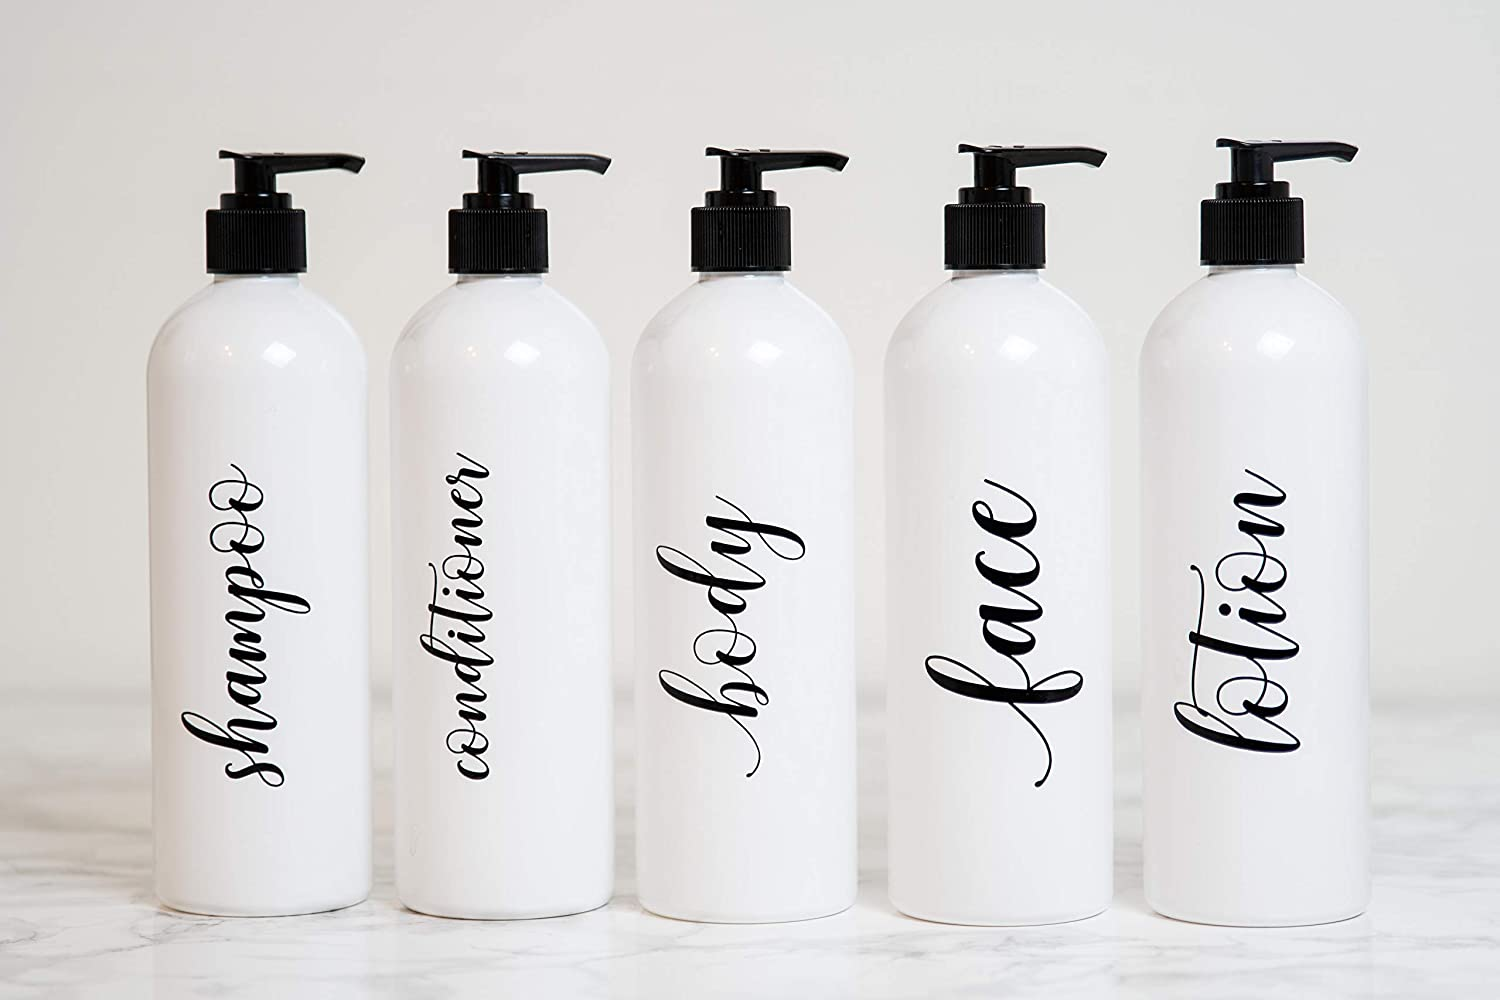 Set of 3 Heartland Lettering Labeled Shower Bottles Refillable Amber Plastic Bottles with Pump 16 oz Shampoo Conditioner and Body Wash Dispensers for Shower